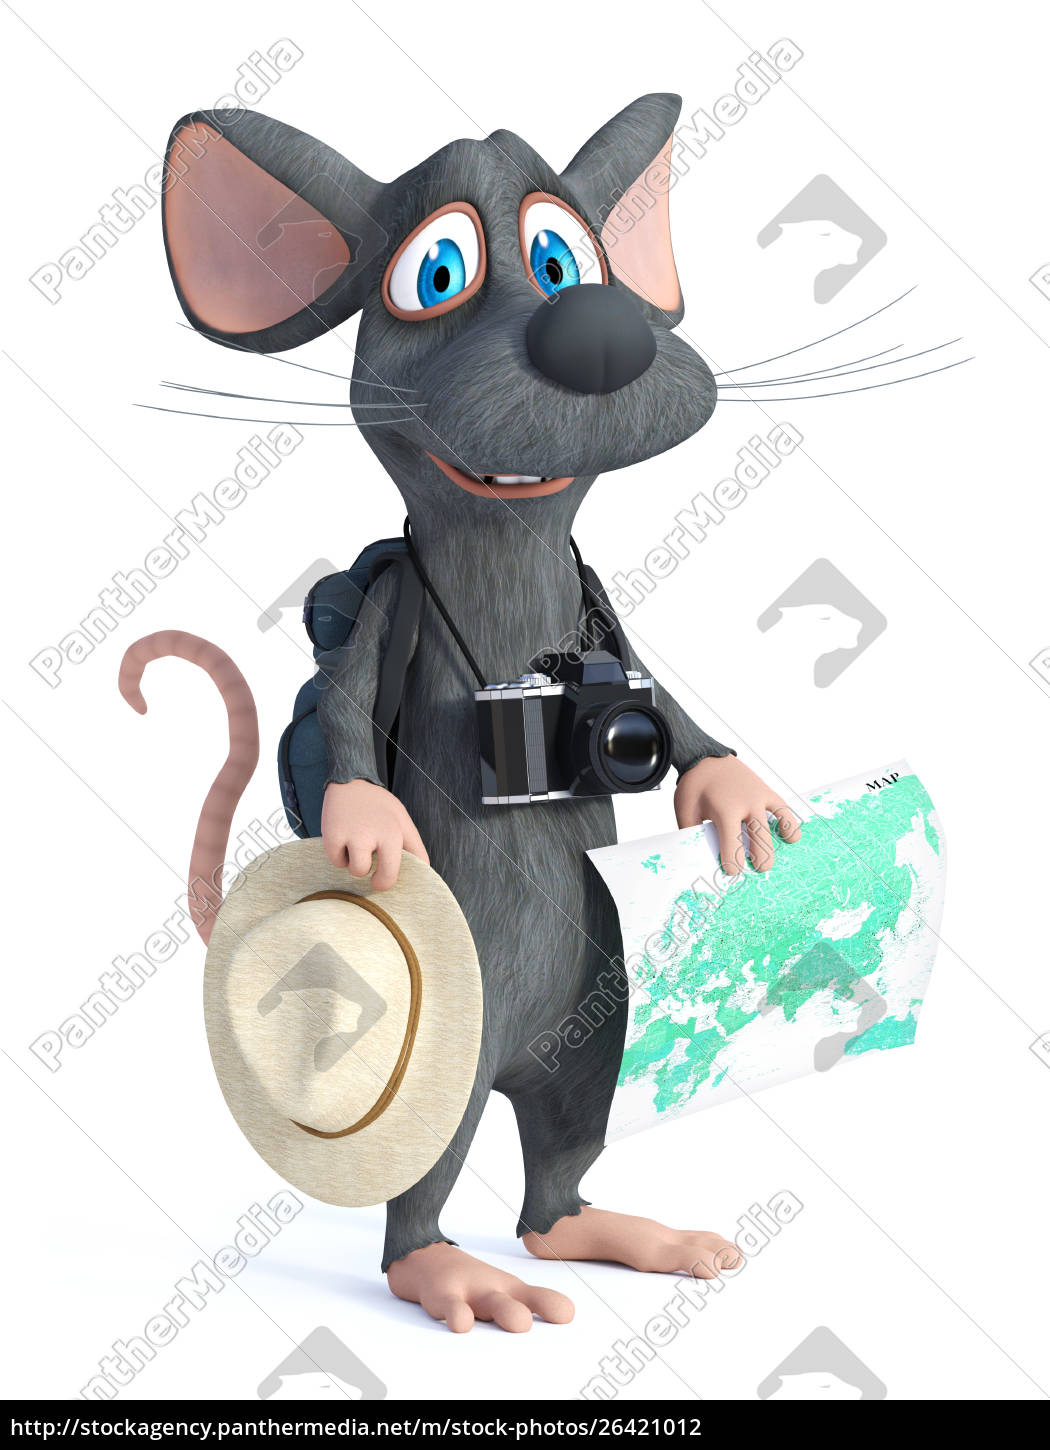 Royalty Free Photo 26421012 3d Rendering Of A Cartoon Mouse Tourist Backpacking